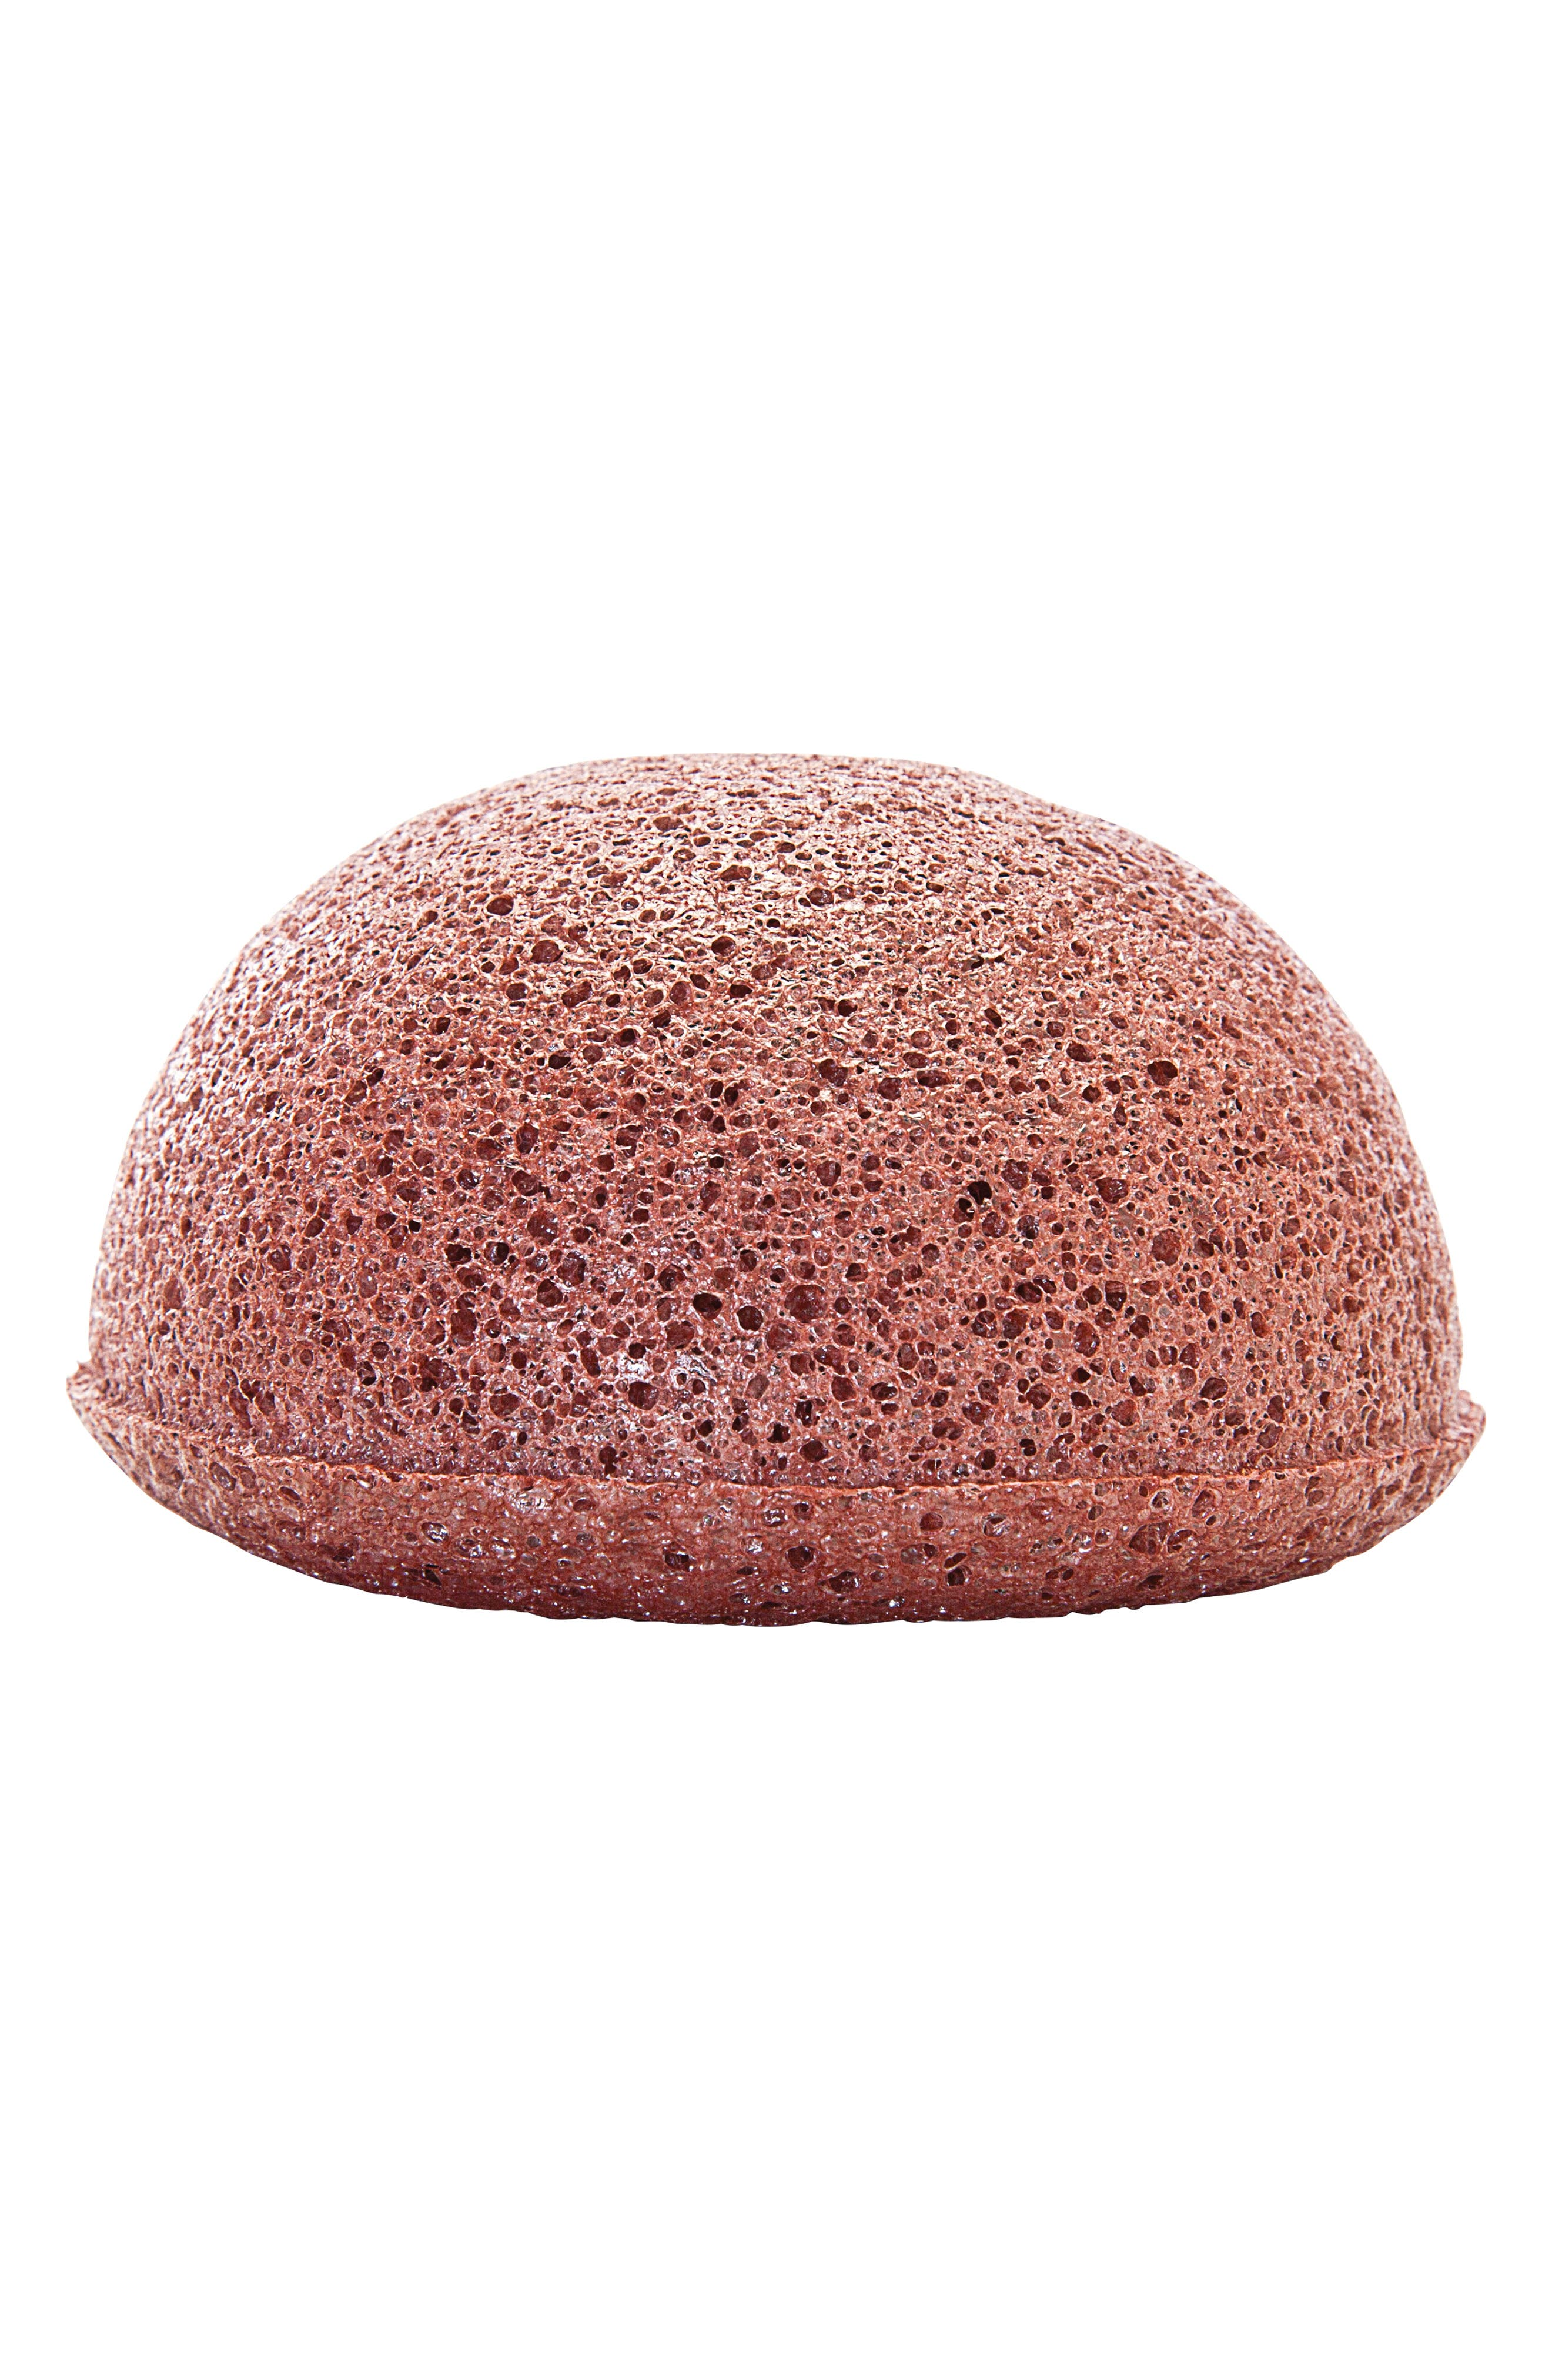 BOSCIA,                             Konjac Cleansing Sponge with Deep Hydrating Clay,                             Main thumbnail 1, color,                             NO COLOR